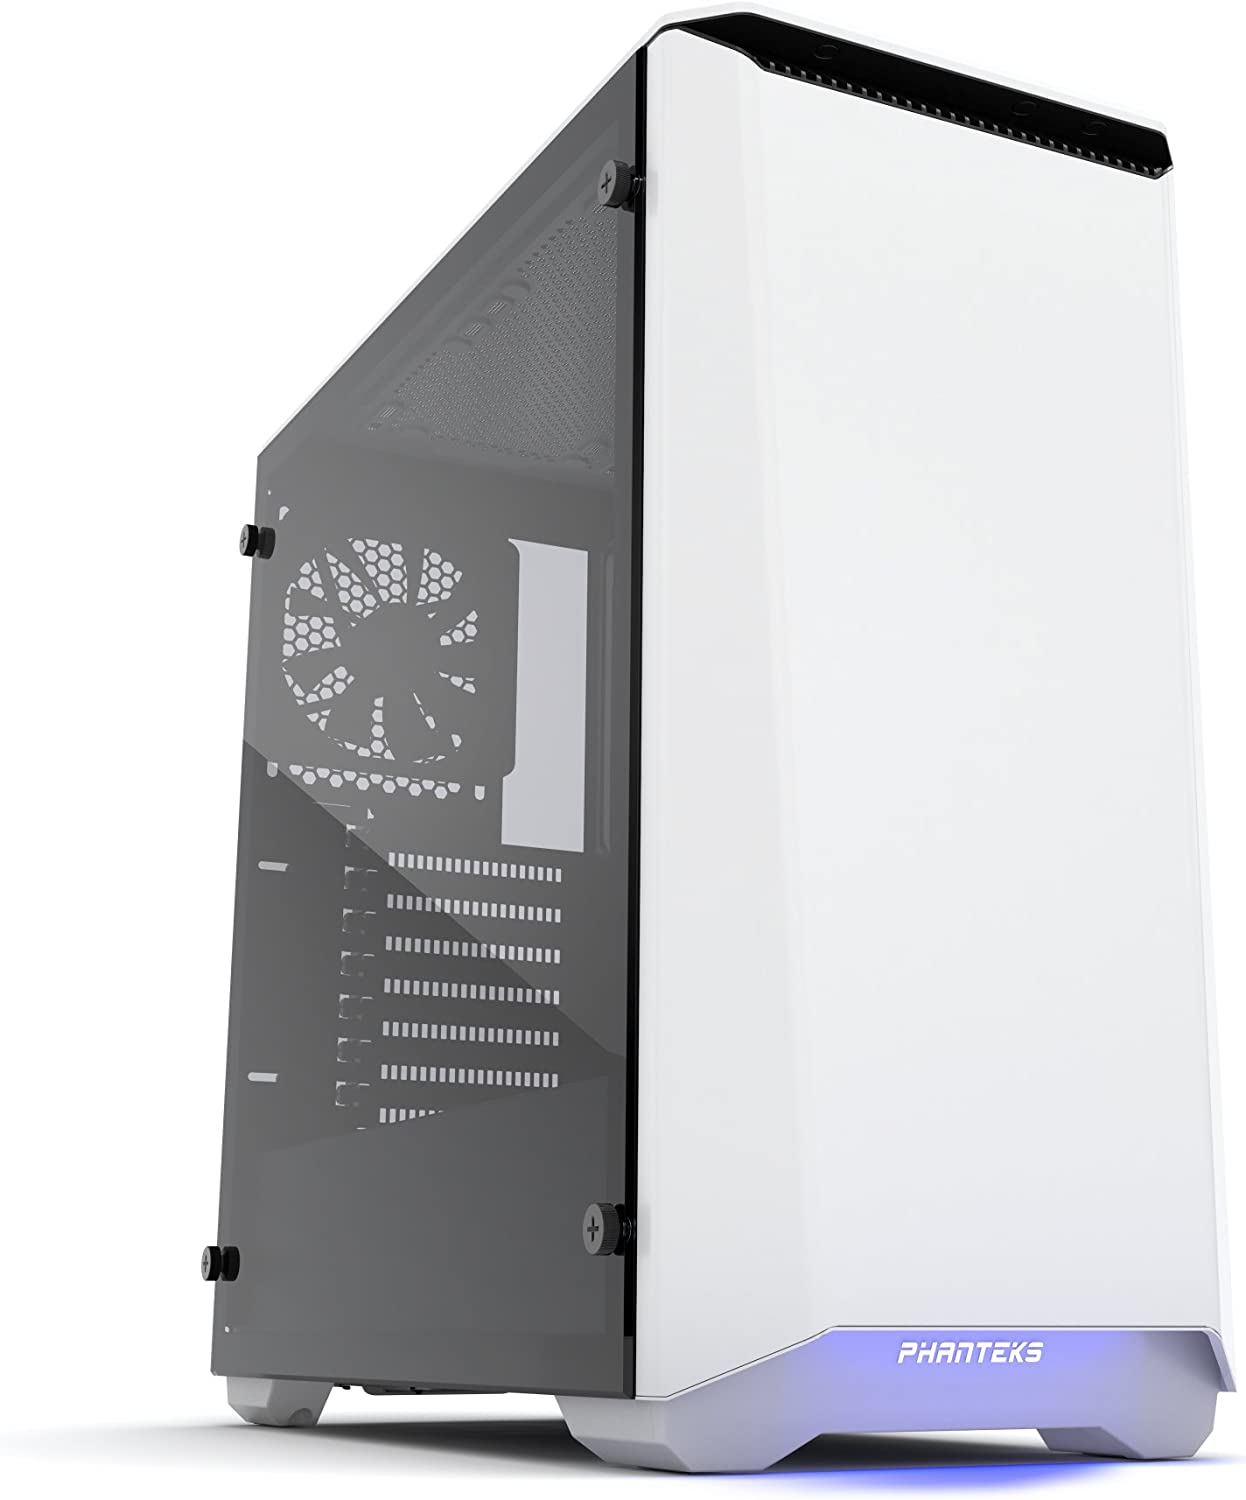 Phanteks PH-EC416PTG_WT Eclipse P400 Steel ATX Mid Tower Case Glacier White, Tempered Glass Edition Cases